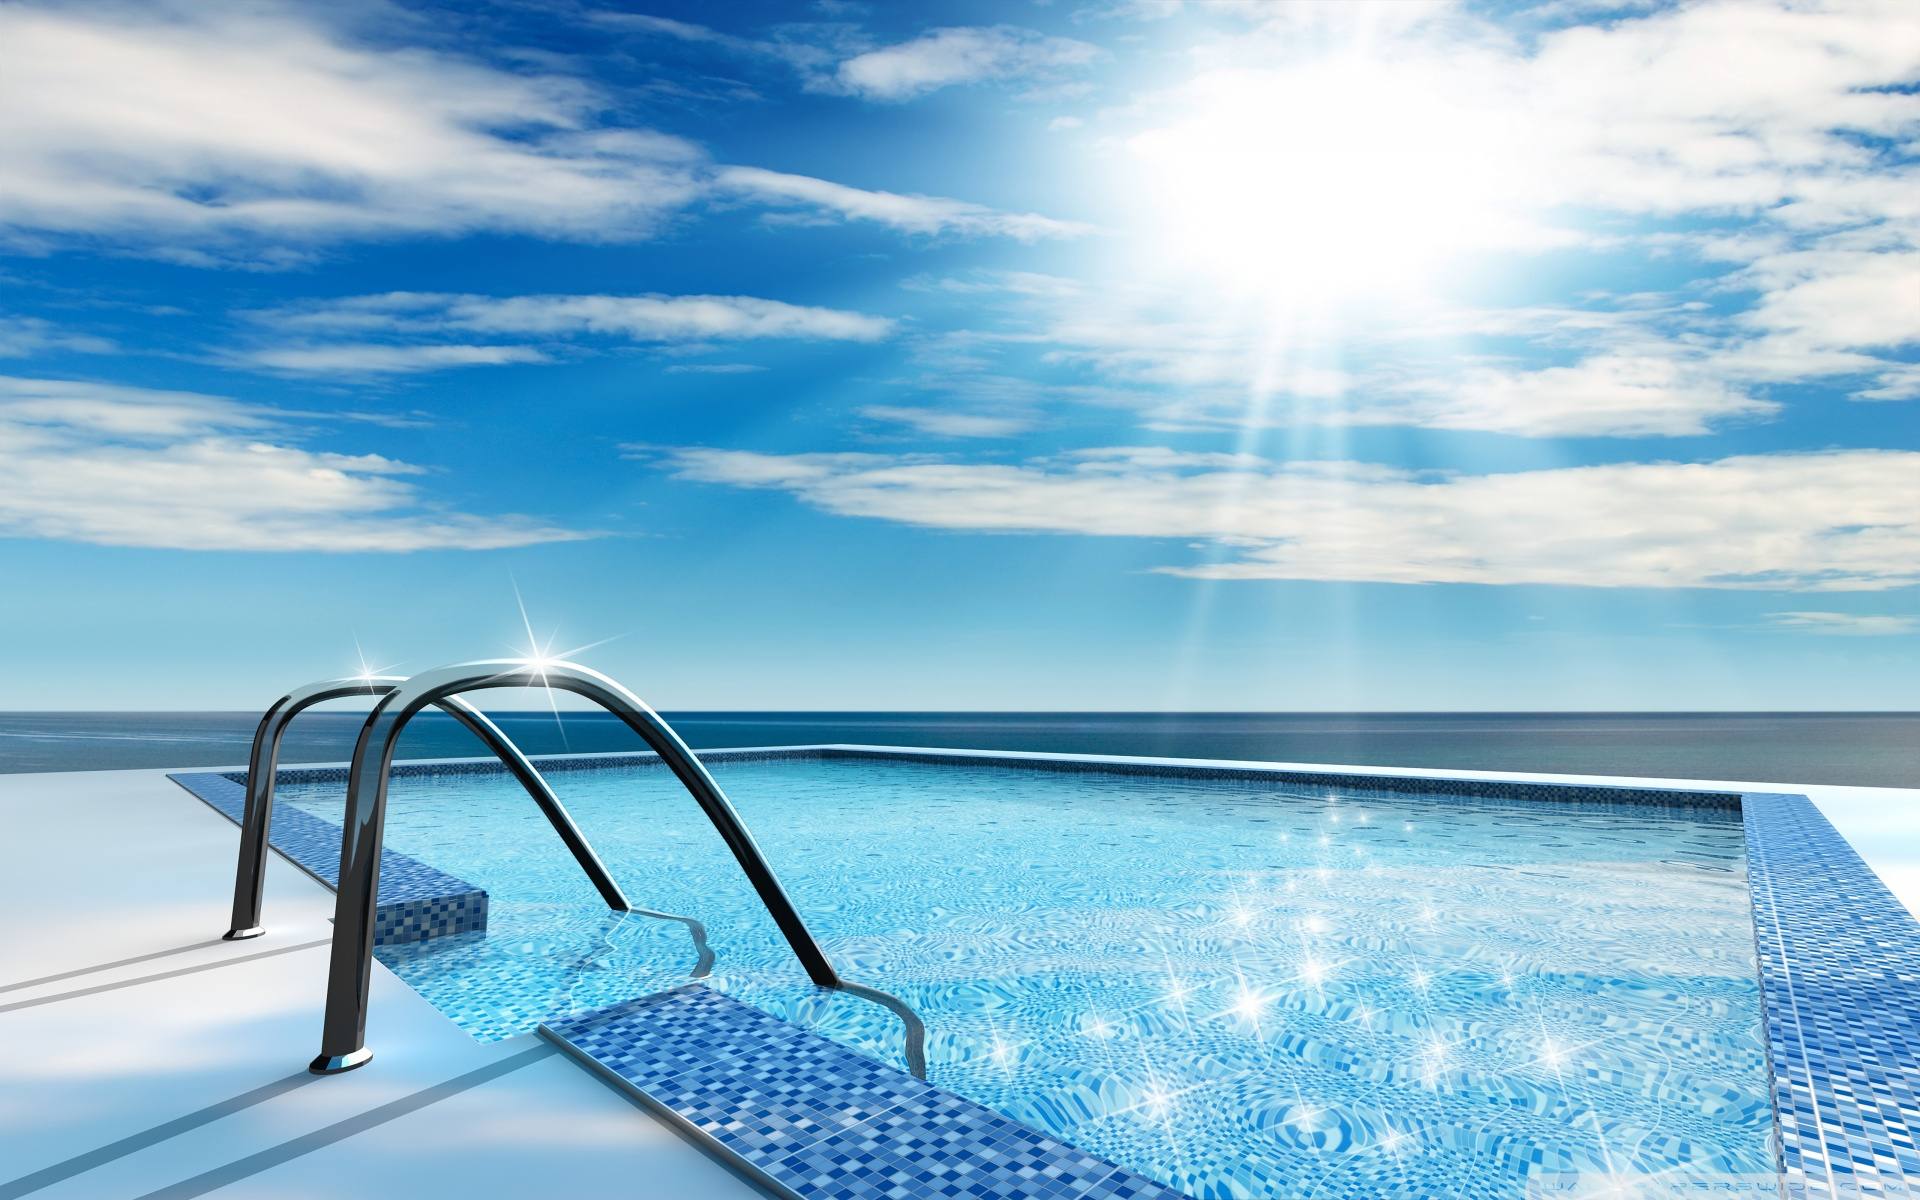 piscine-images-et-photos-hd